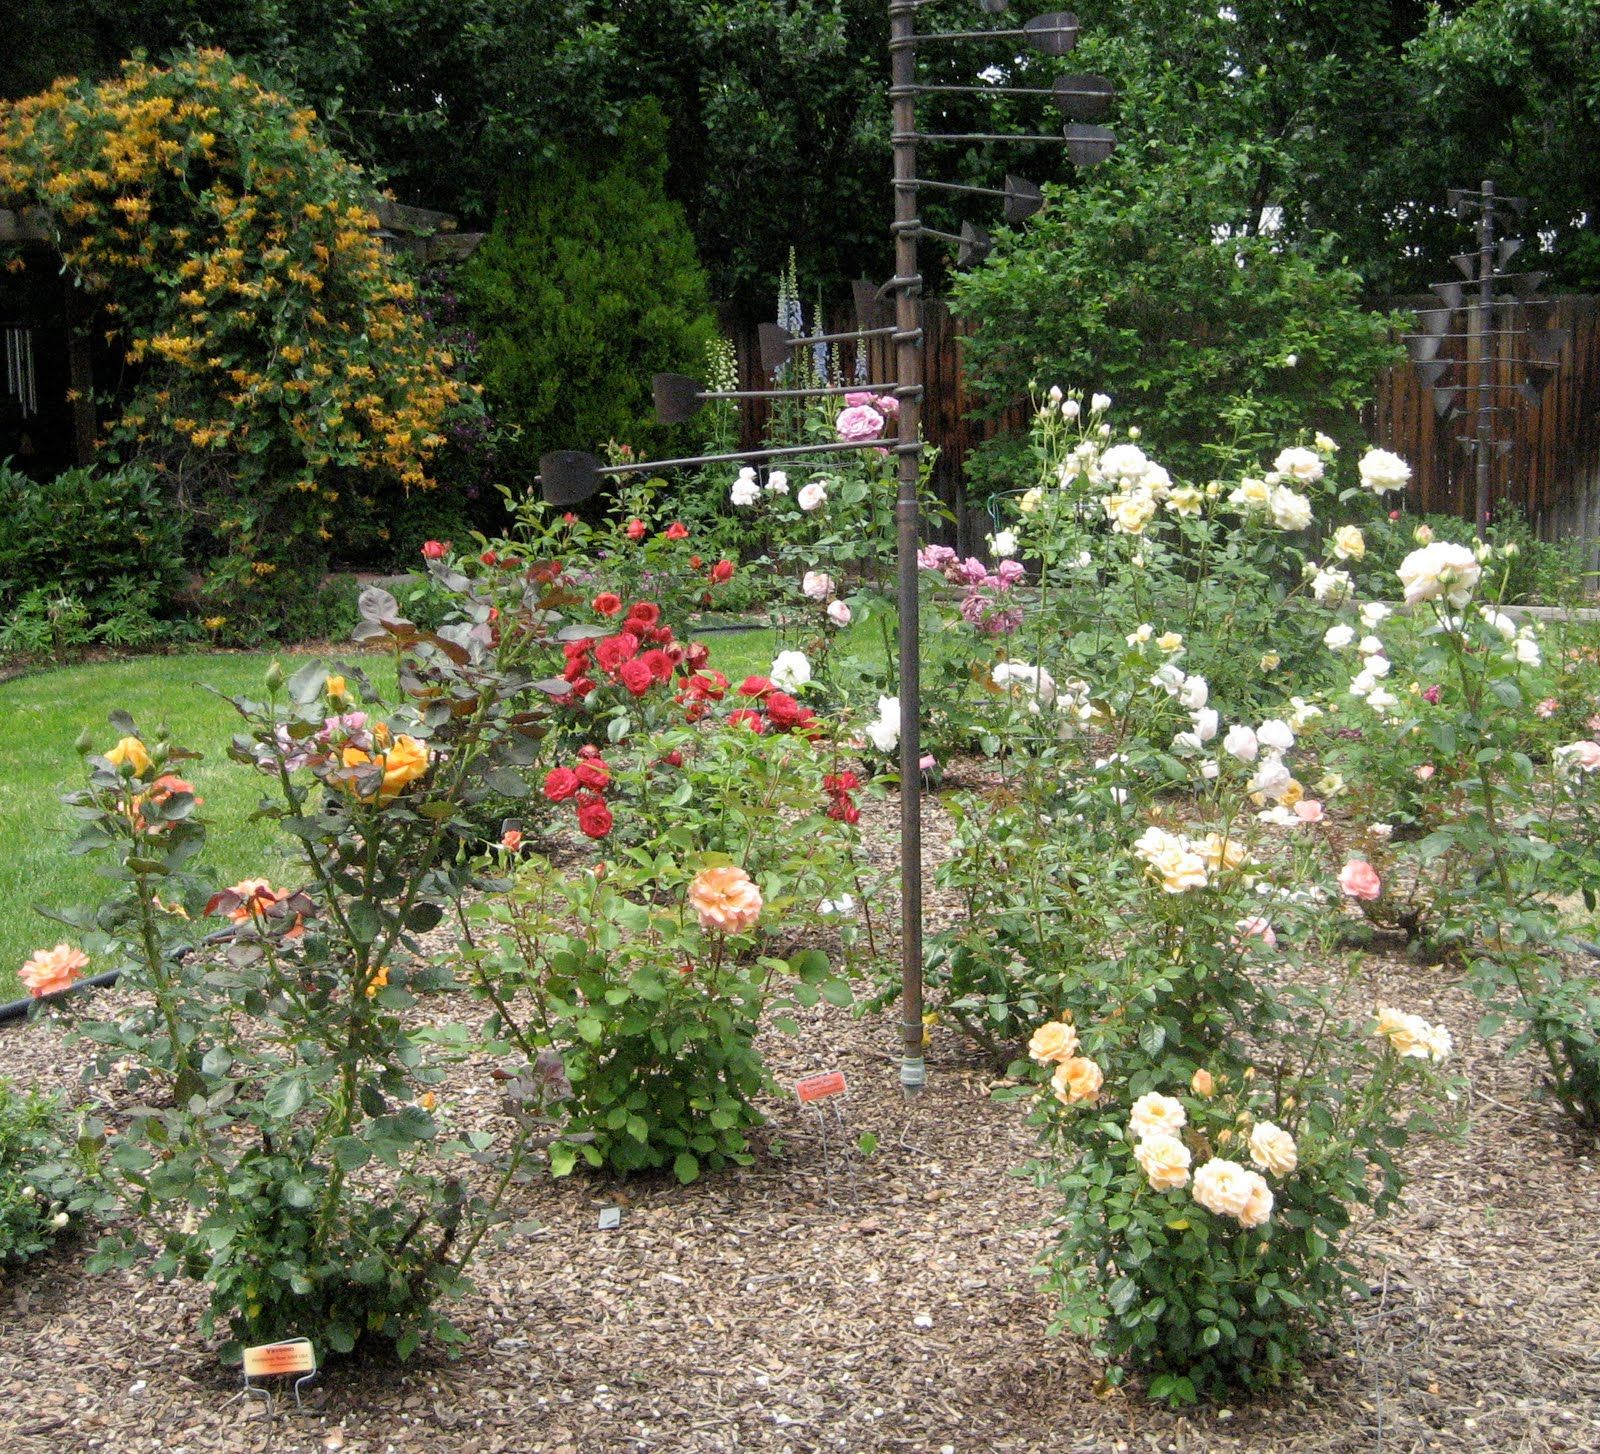 How to take care of roses - 1 Gradually Remove The Mulch From Around The Rose Bushes Don T Do This All At Once Just Remove A Bit At A Time Preferably In The Afternoon